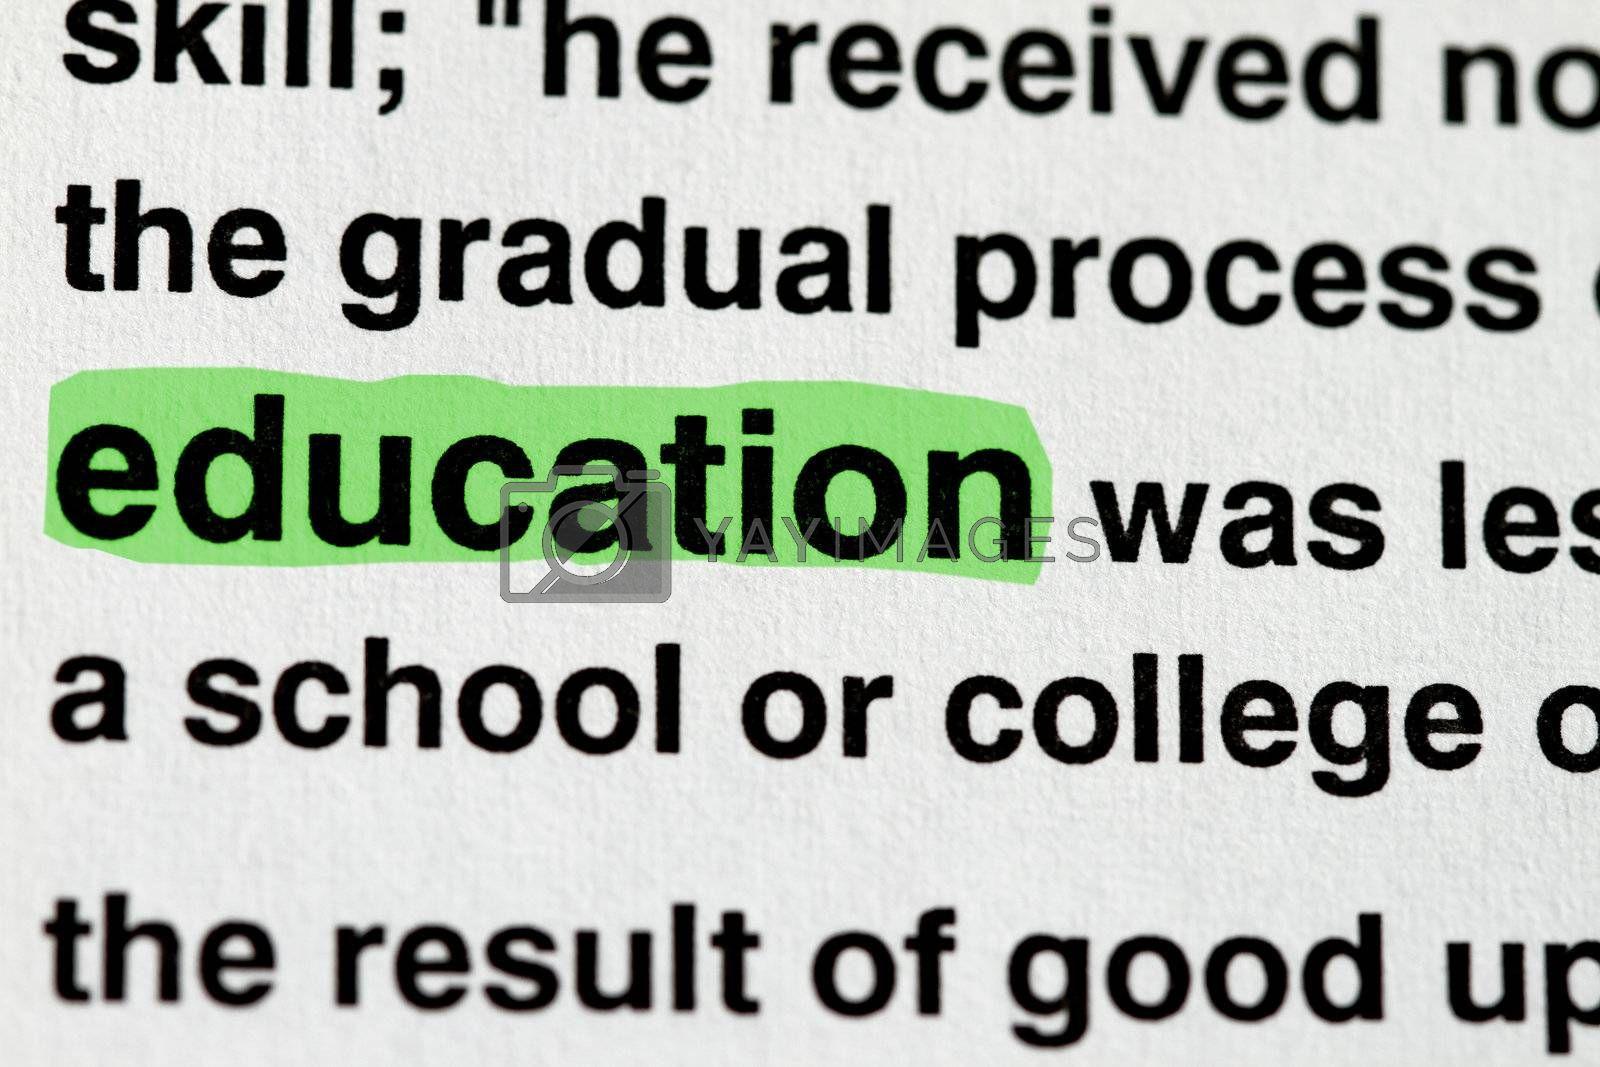 The word education highlighted in green - many uses in education industry.